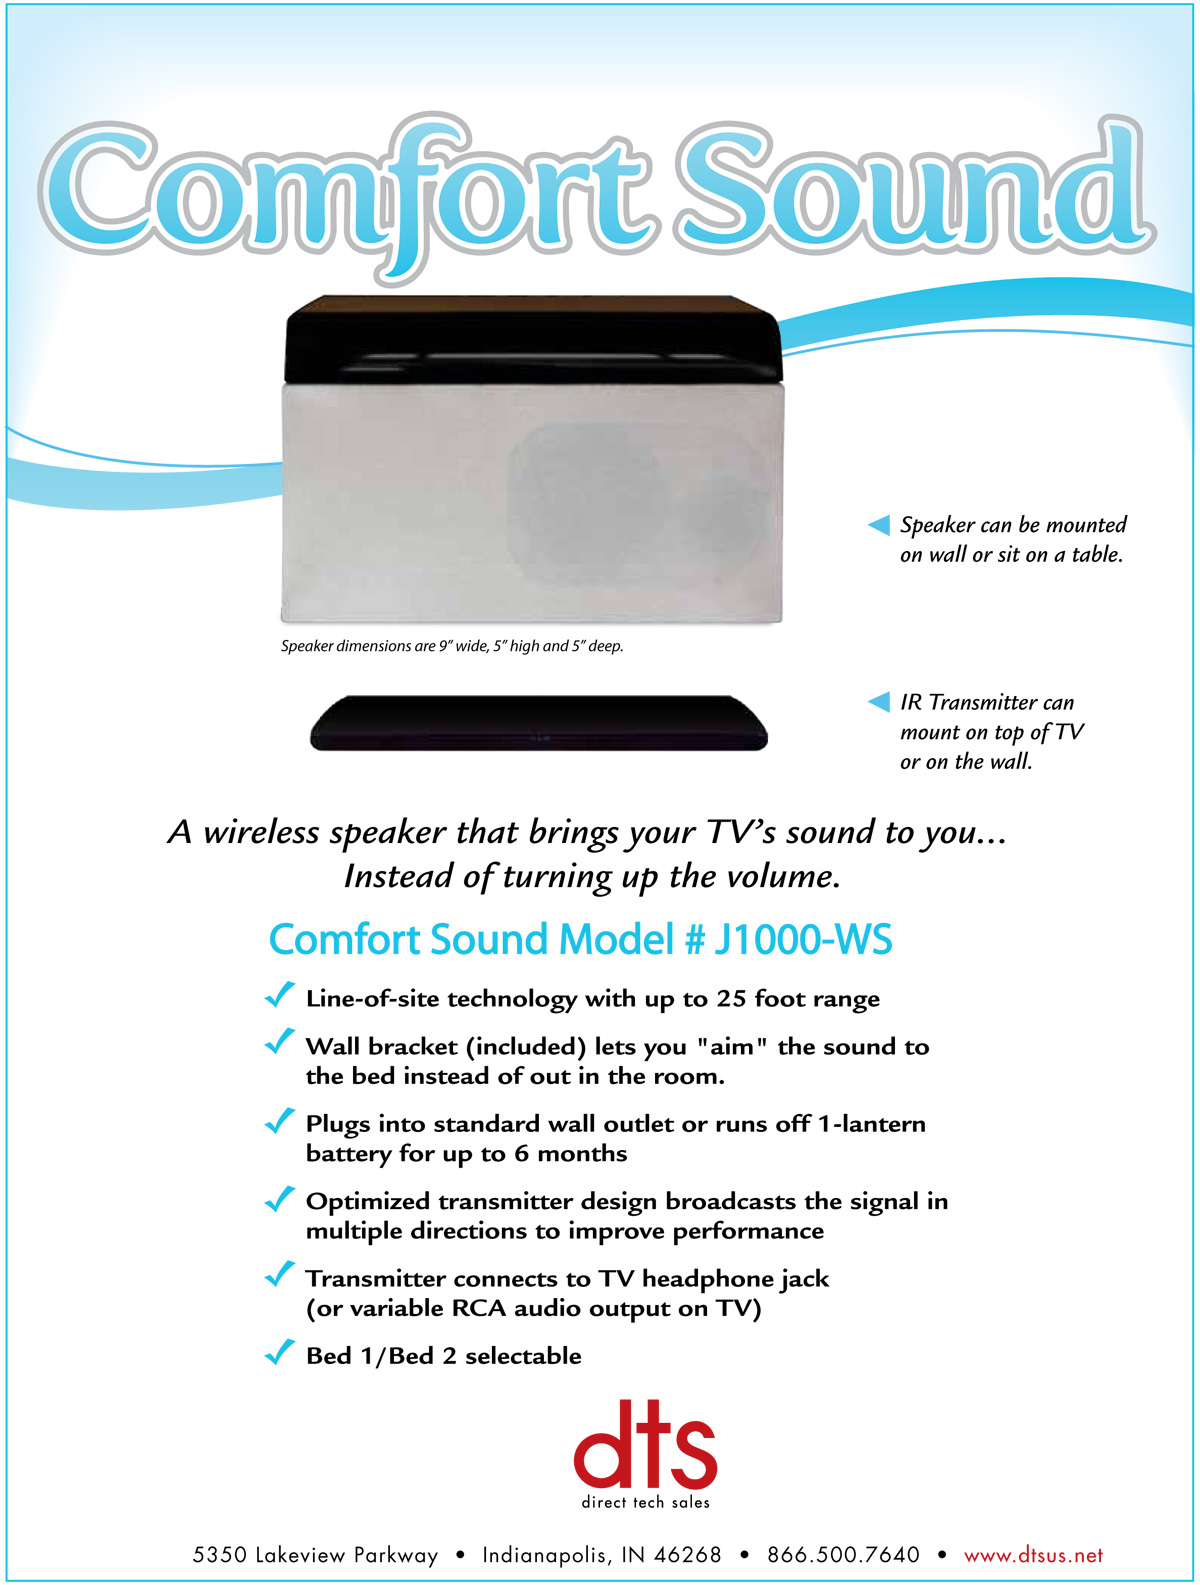 Comfort Sound Speakers Spec Sheet